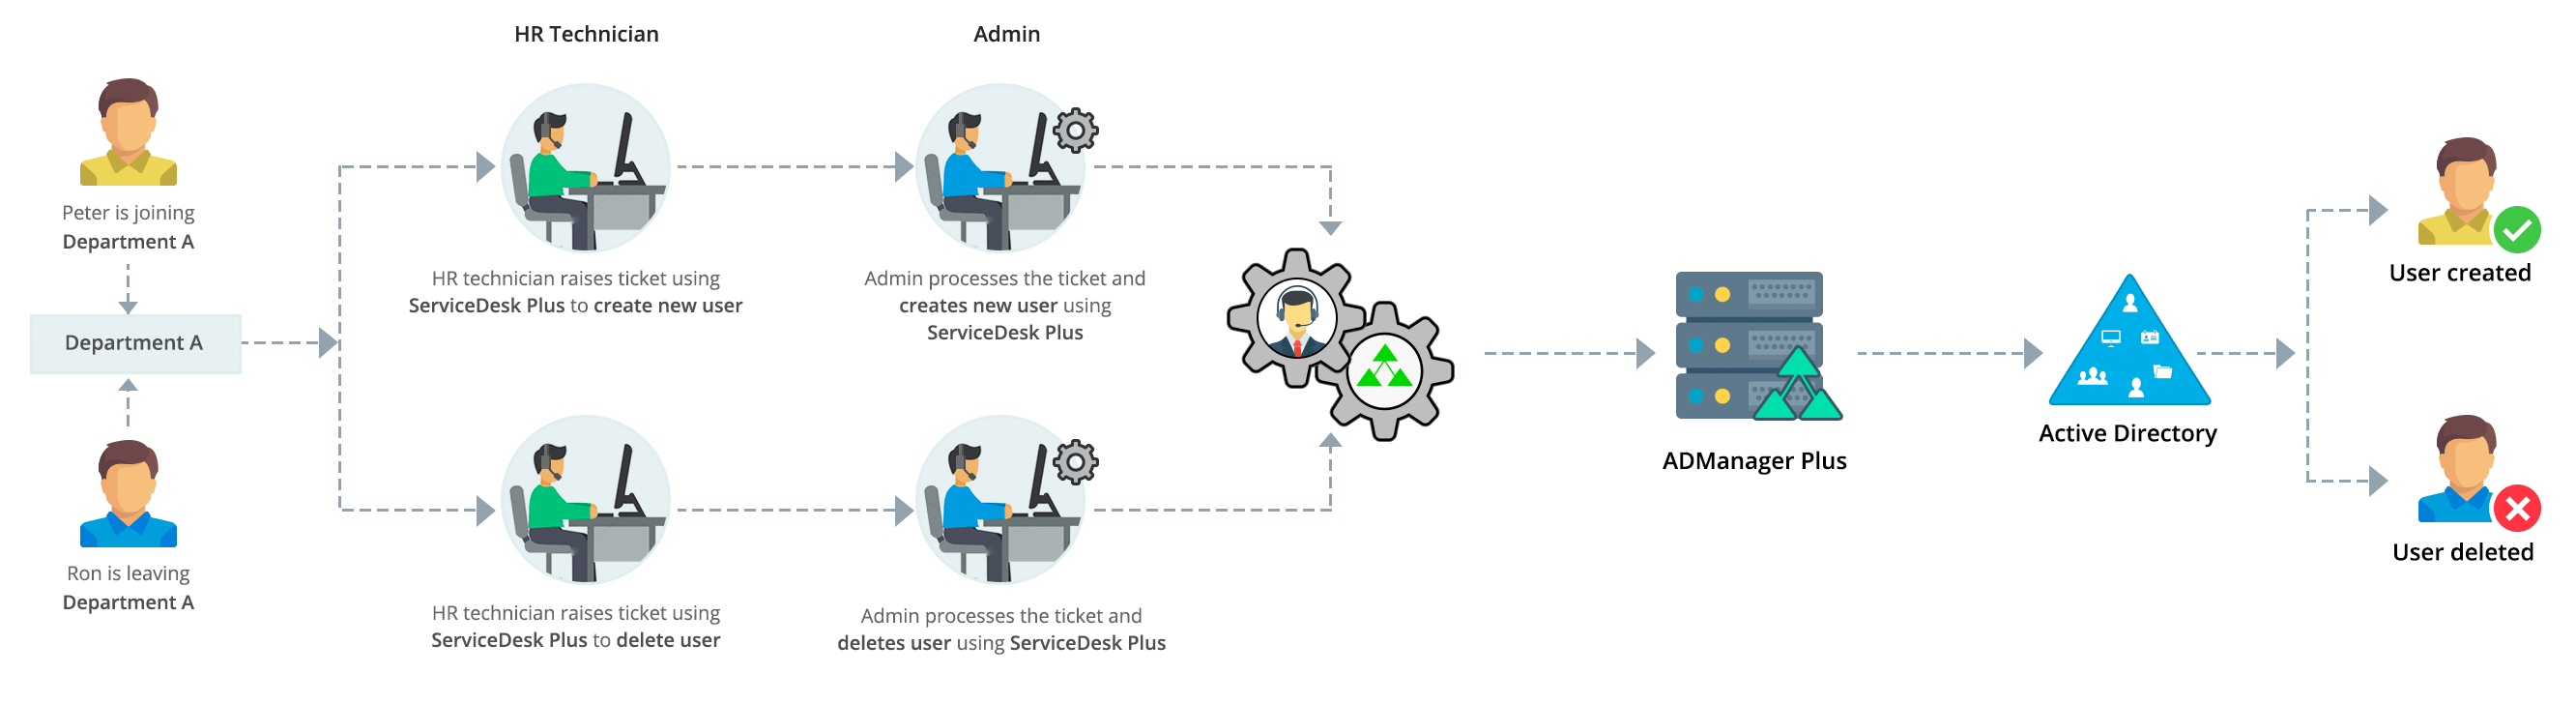 Admanager Plus Integration With Third Party Applications